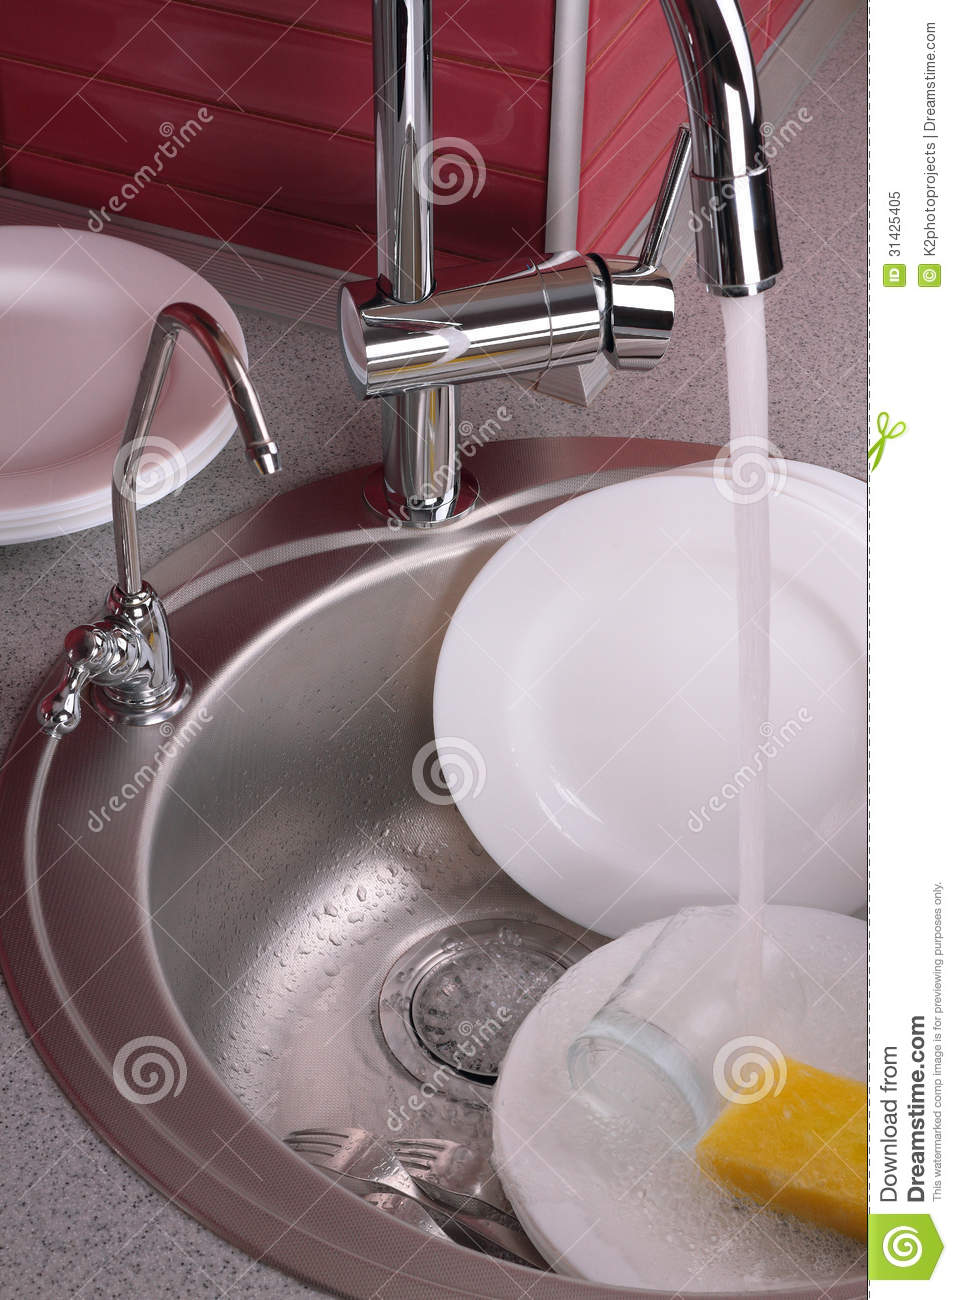 Washing dishes process essay